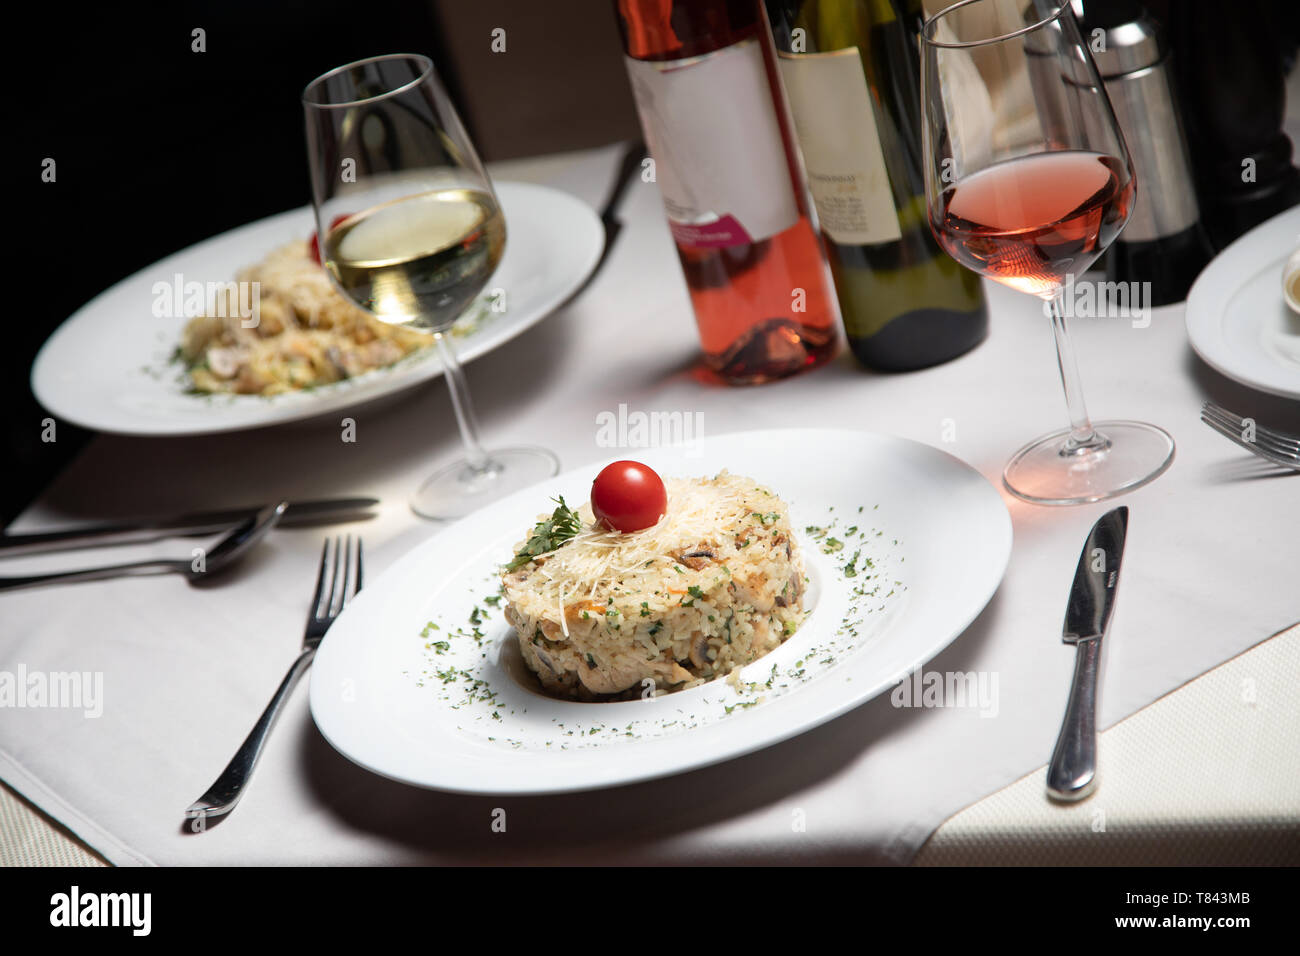 Risotto with white wine glass served at restaurant table - Stock Image